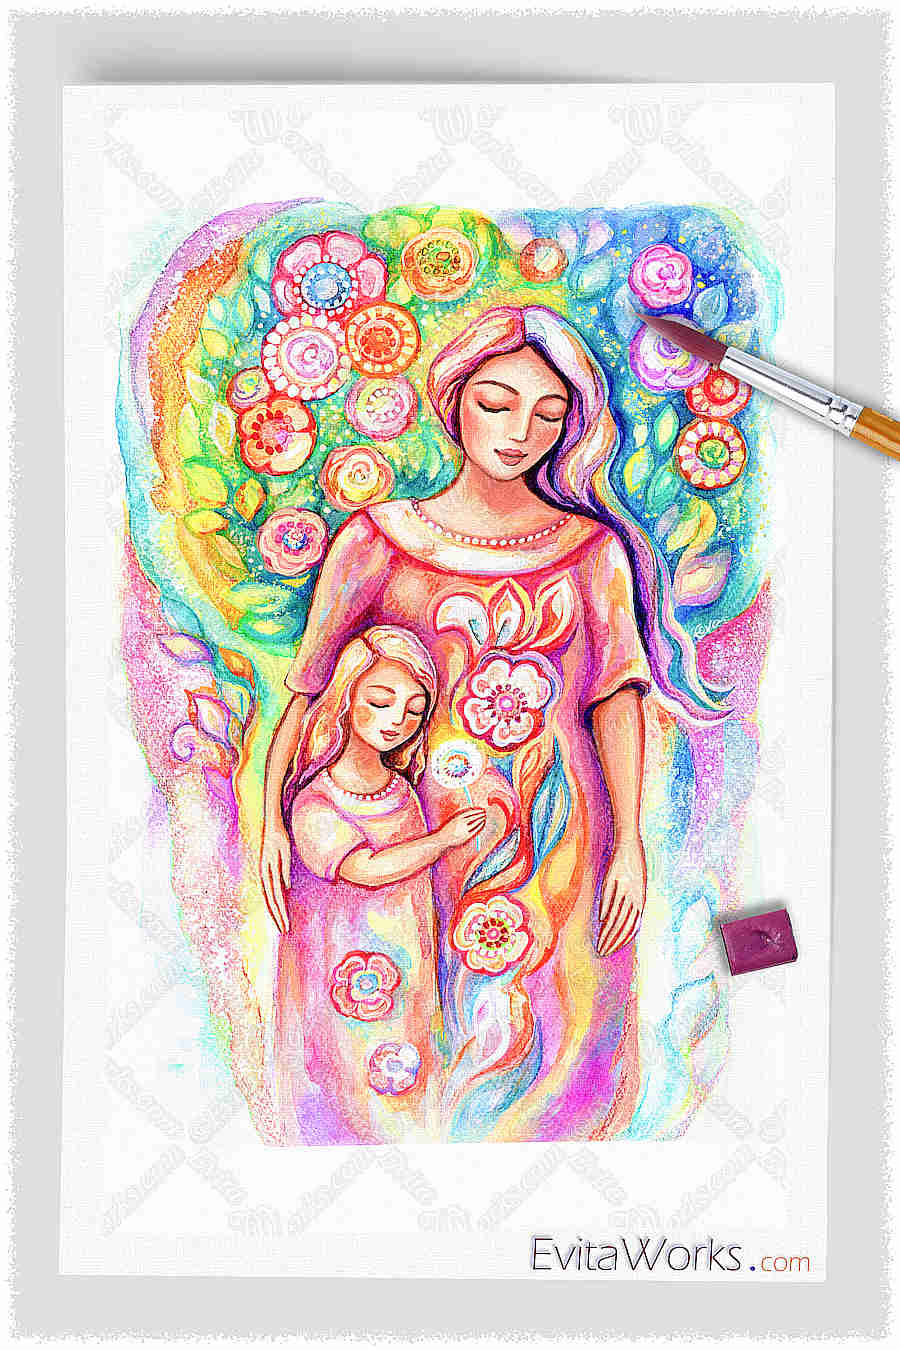 oa mother daughter y19 ~ EvitaWorks